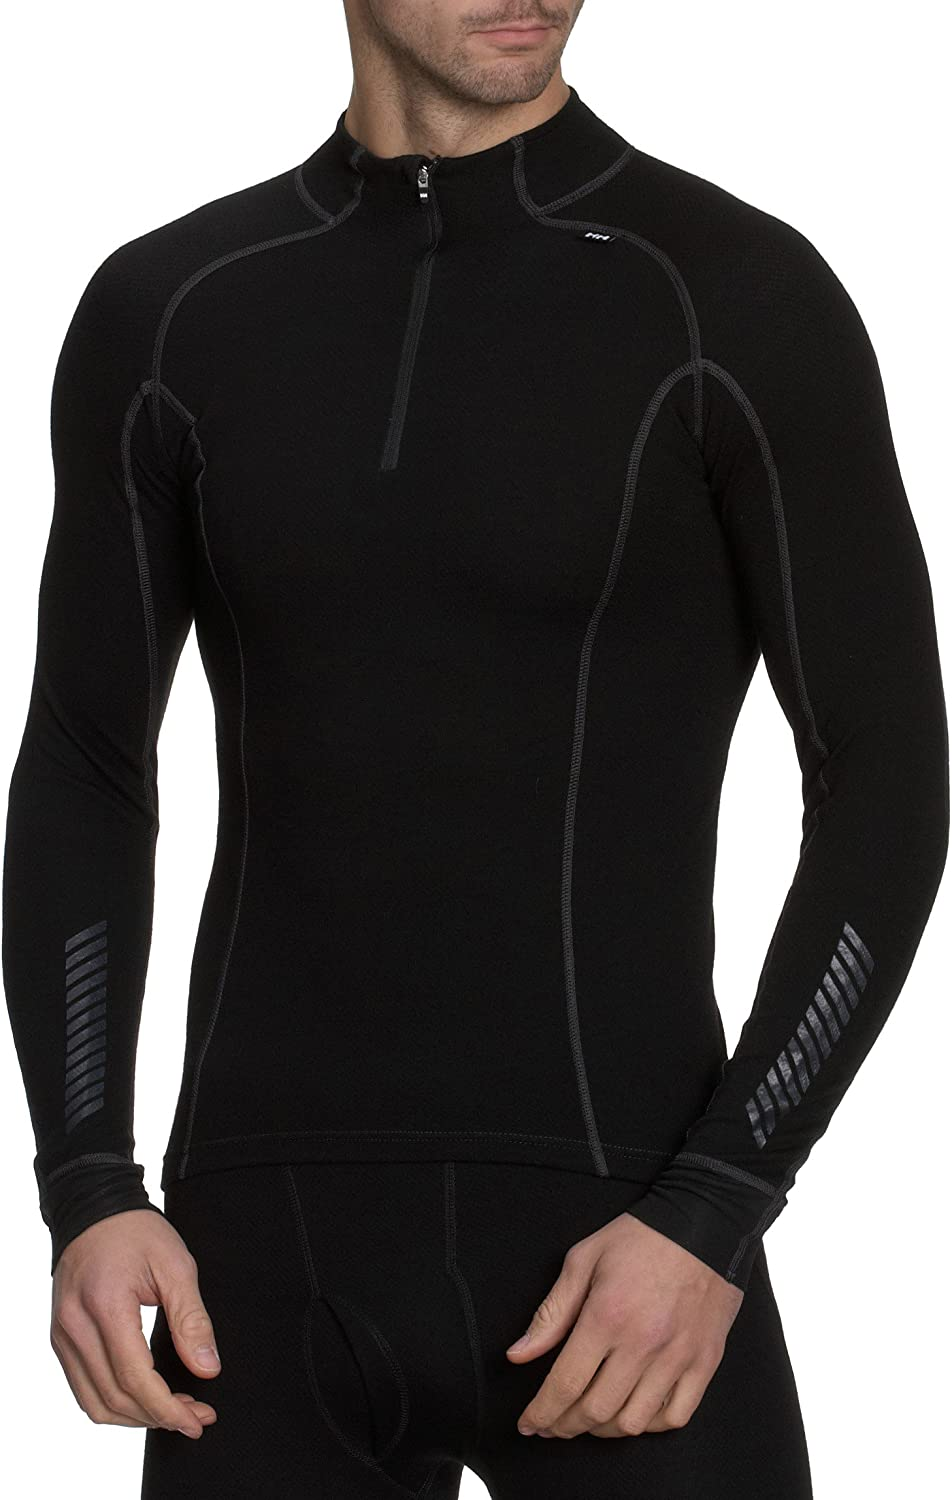 Helly Hansen Men's Warm Freeze 1 2 Zip Thermal Baselayer Top